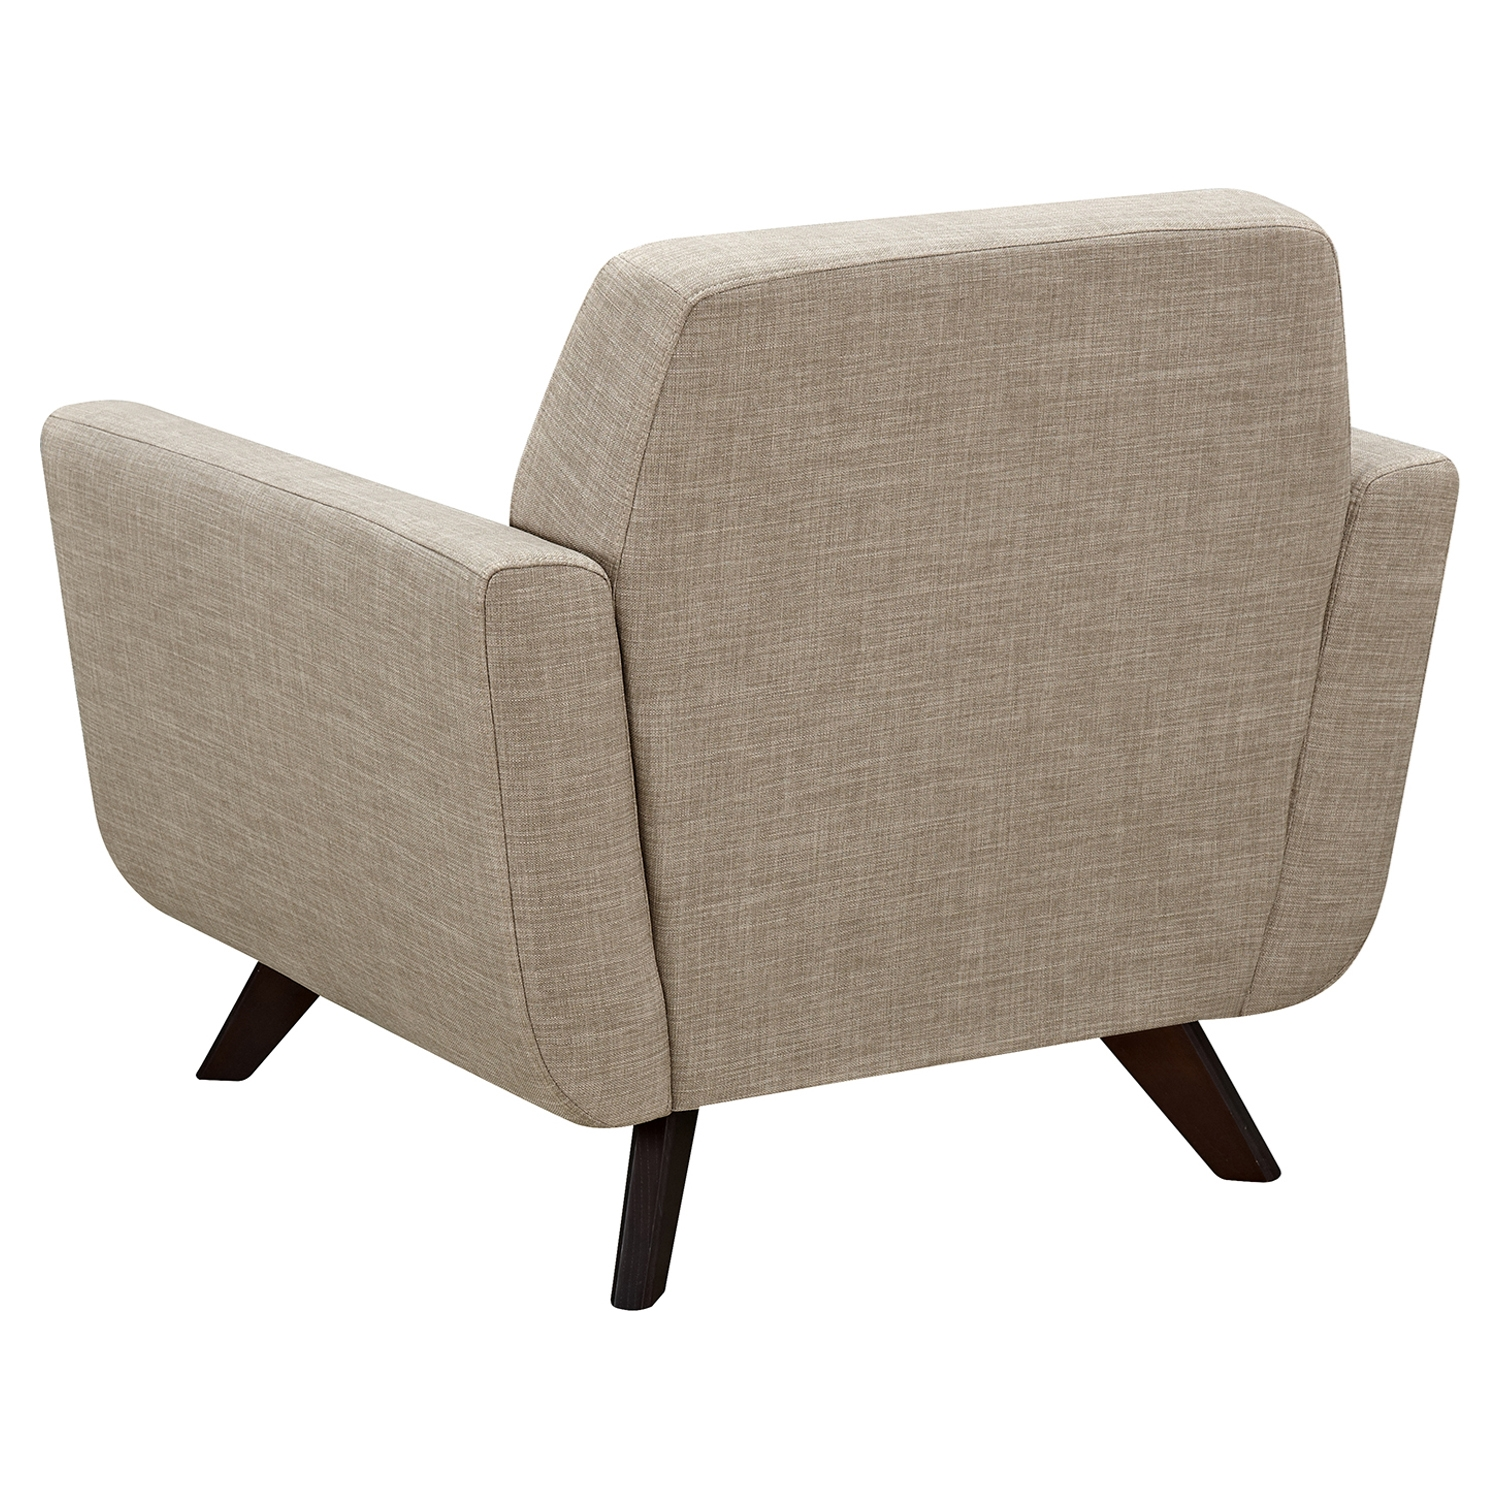 Dania Tufted Upholstery Armchair - Light Sand - NYEK-224462